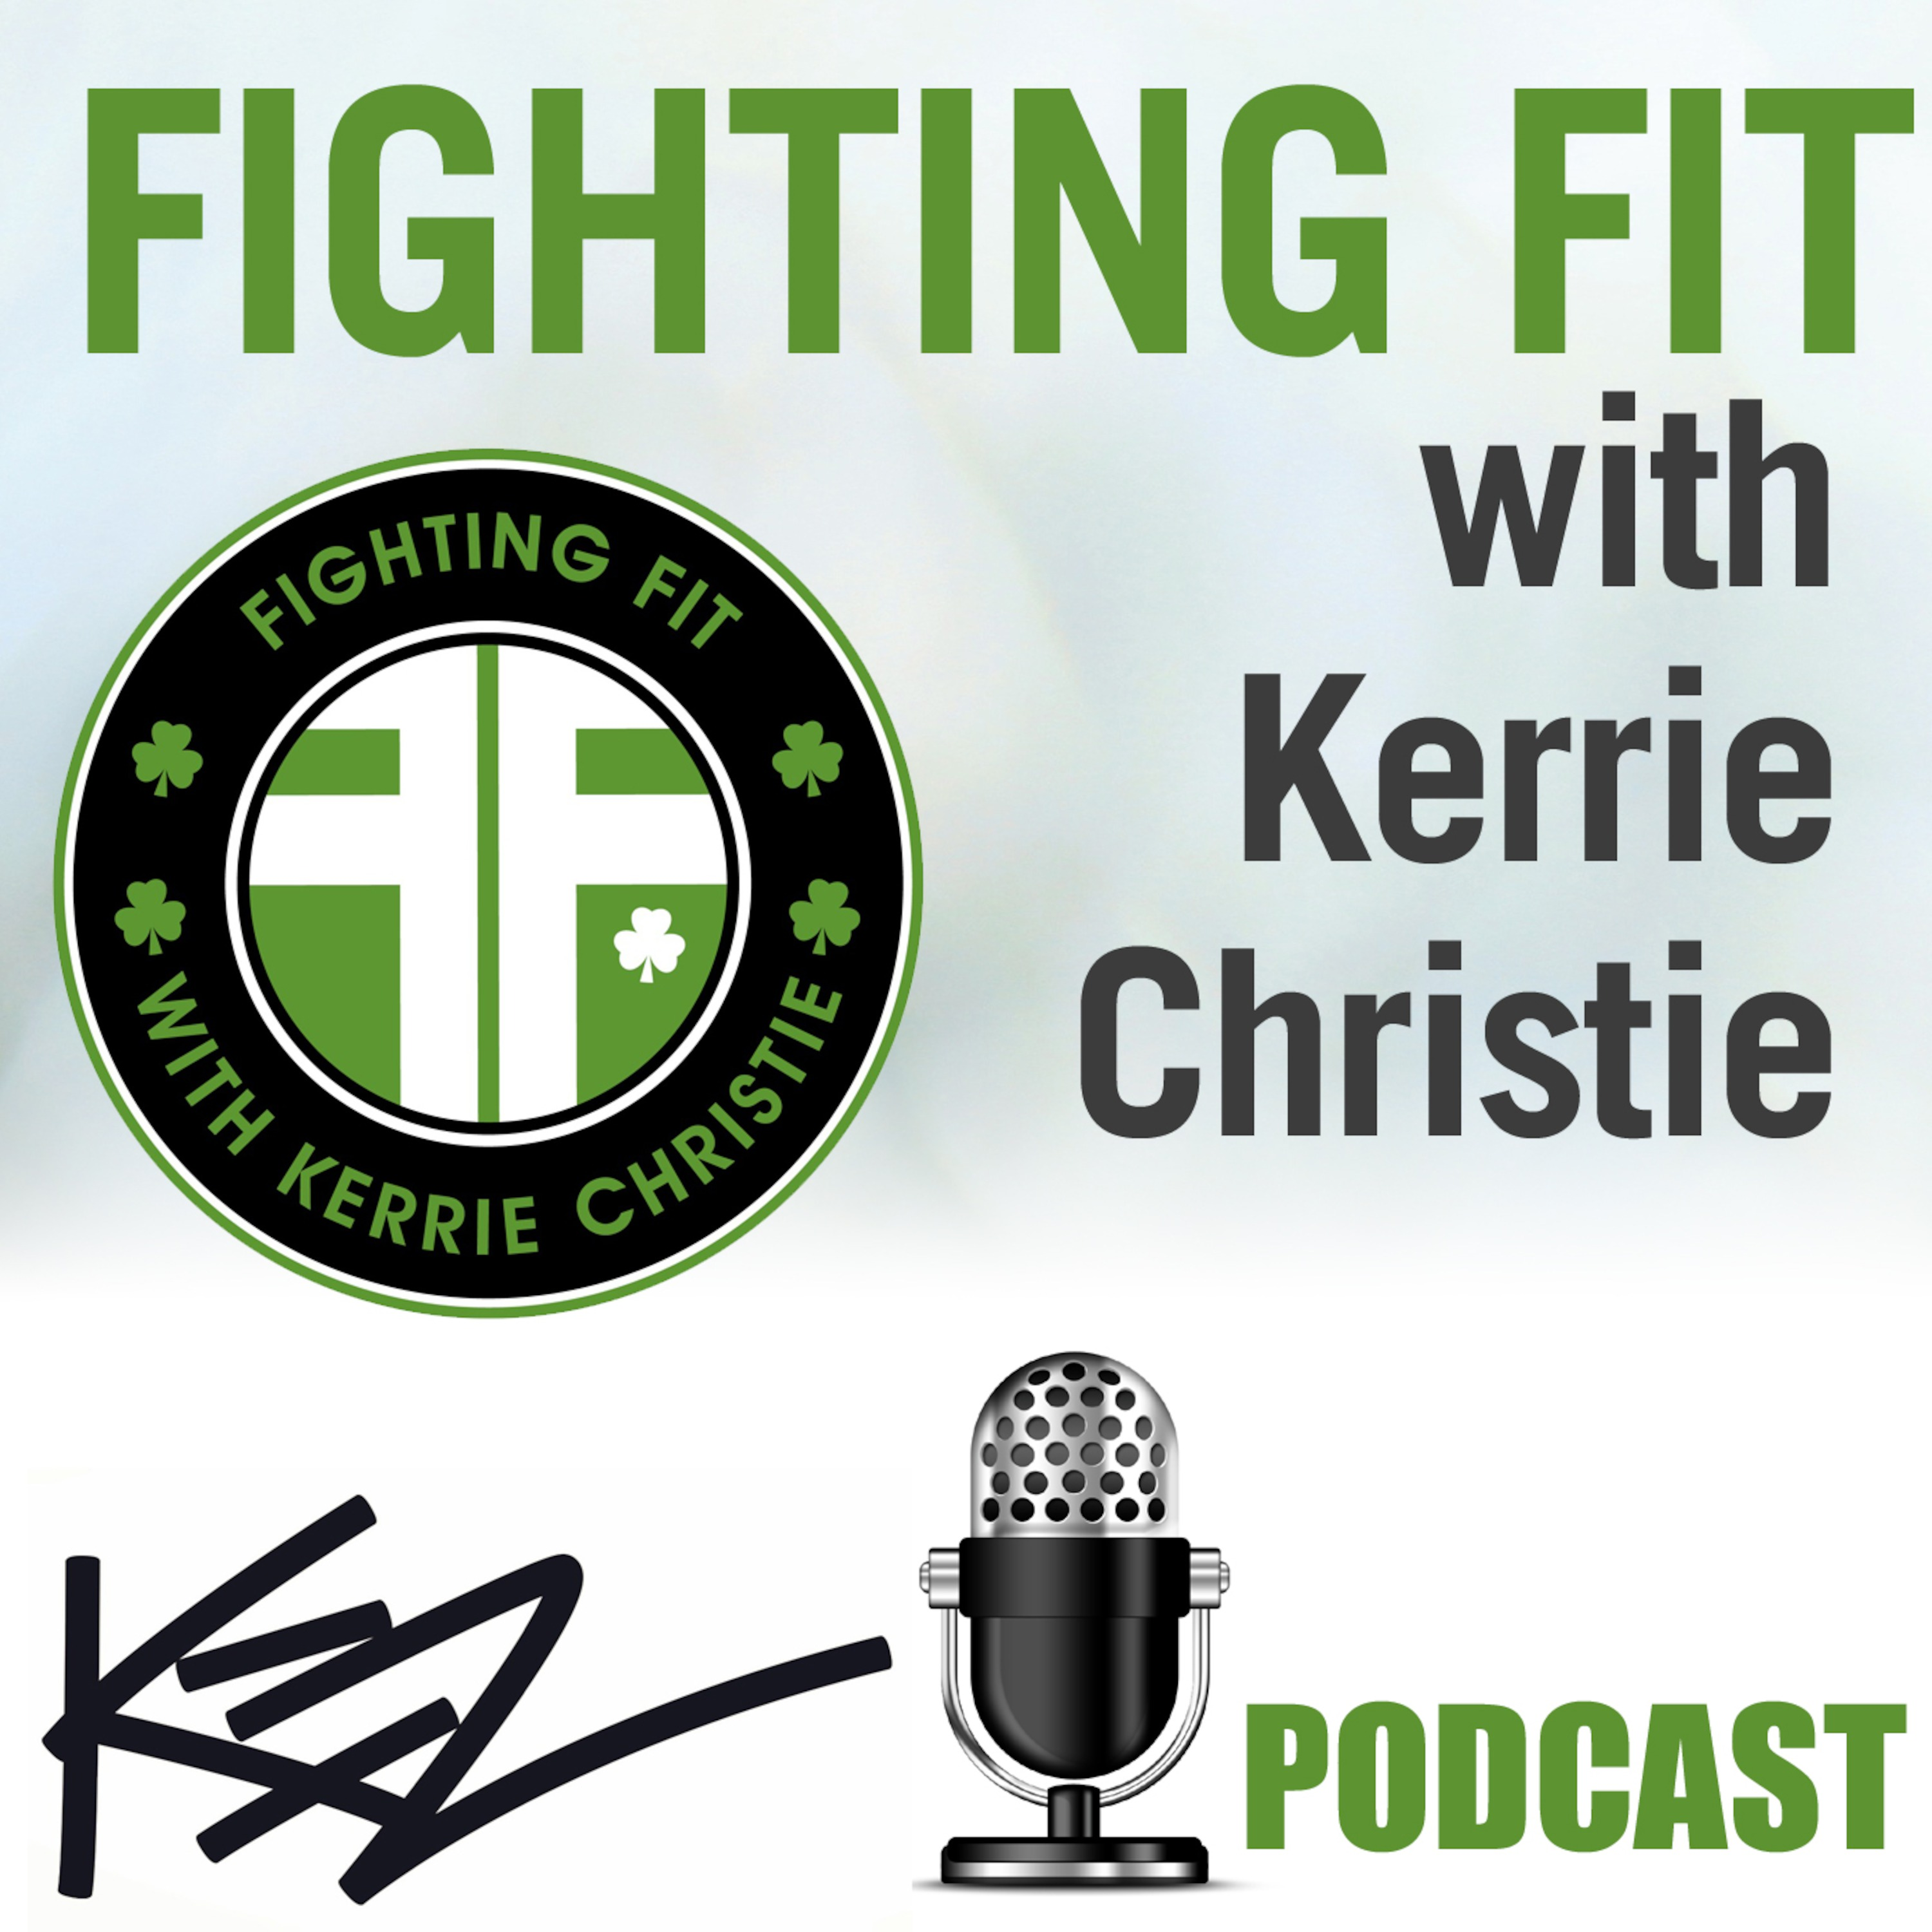 Fighting Fit with Kerrie Christie - Episode 1: St PADDIES Day